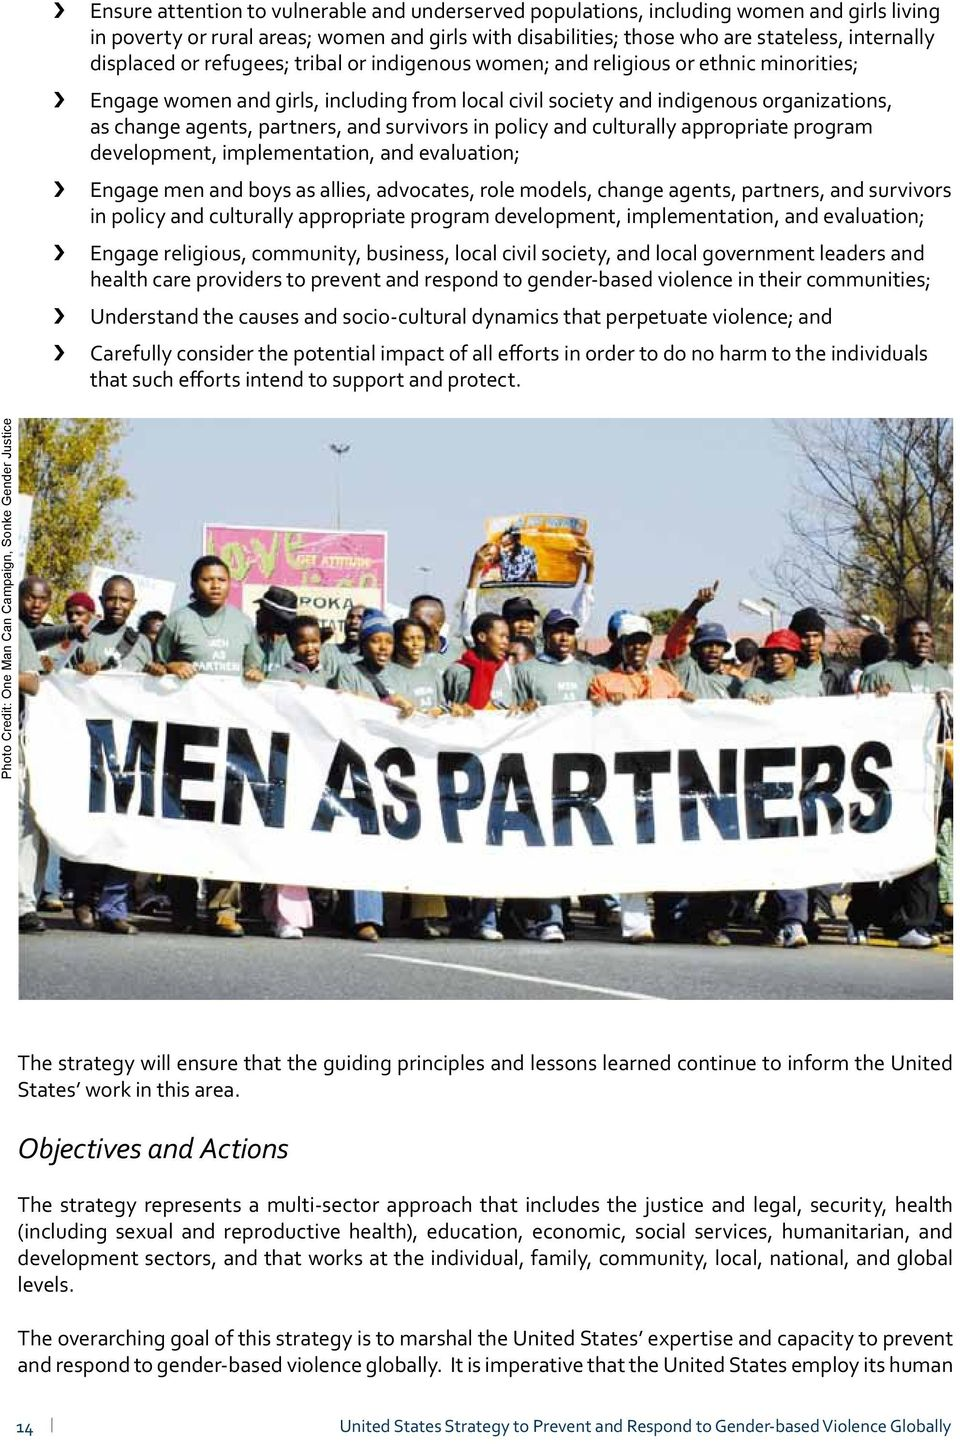 partners, and survivors in policy and culturally appropriate program development, implementation, and evaluation; Engage men and boys as allies, advocates, role models, change agents, partners, and